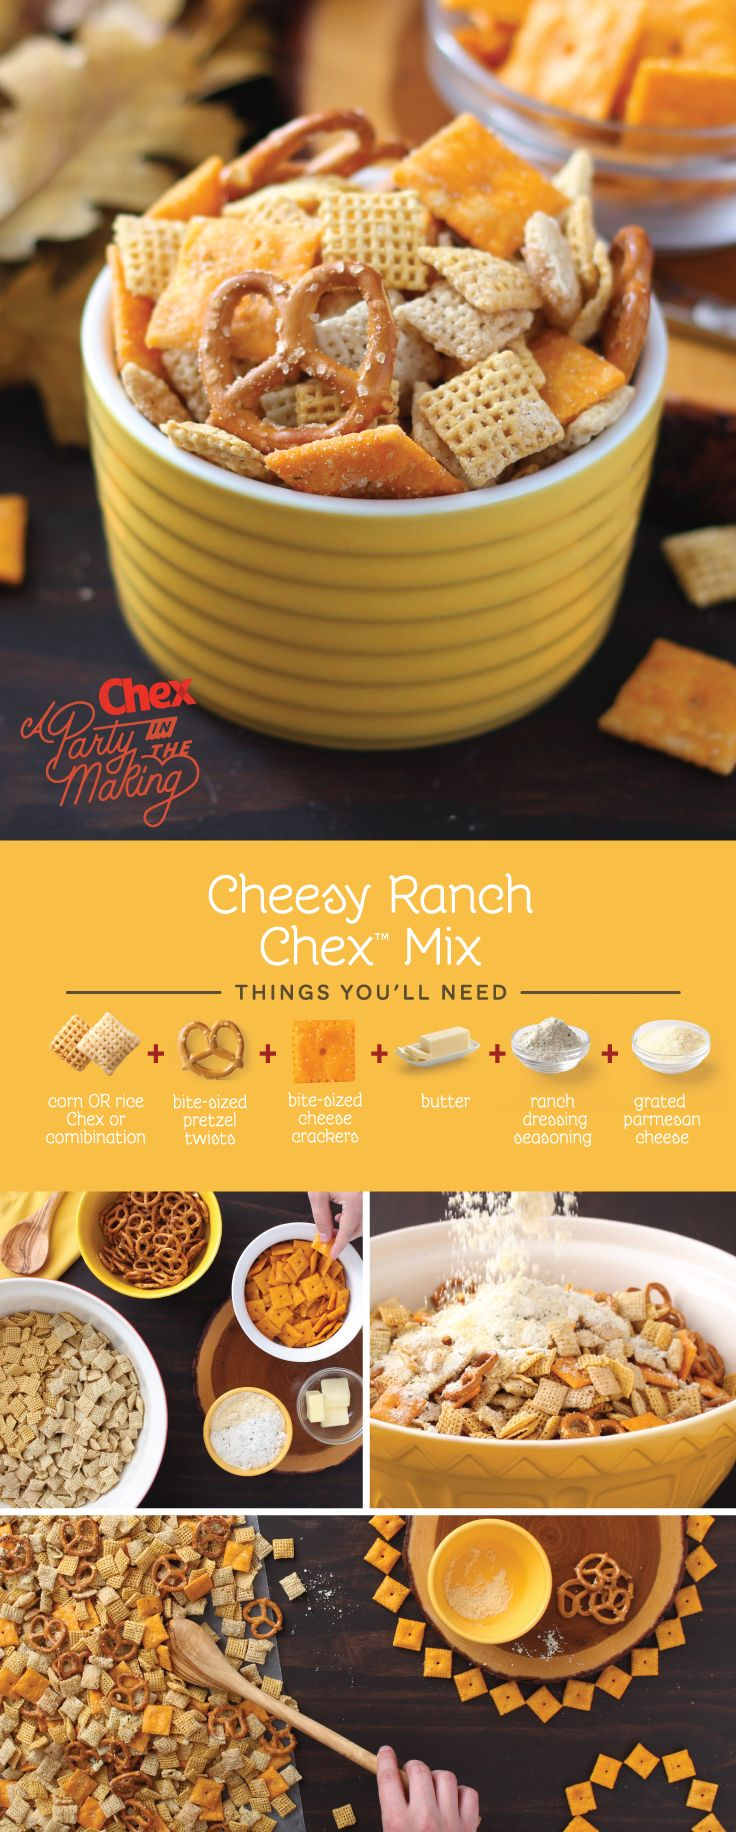 Cheese lovers, this one's for you. Homemade Cheesy Ranch Chex Mix doubles down on cheesy goodness with crunchy cheese crackers and a generous sprinkle of parmesan cheese.